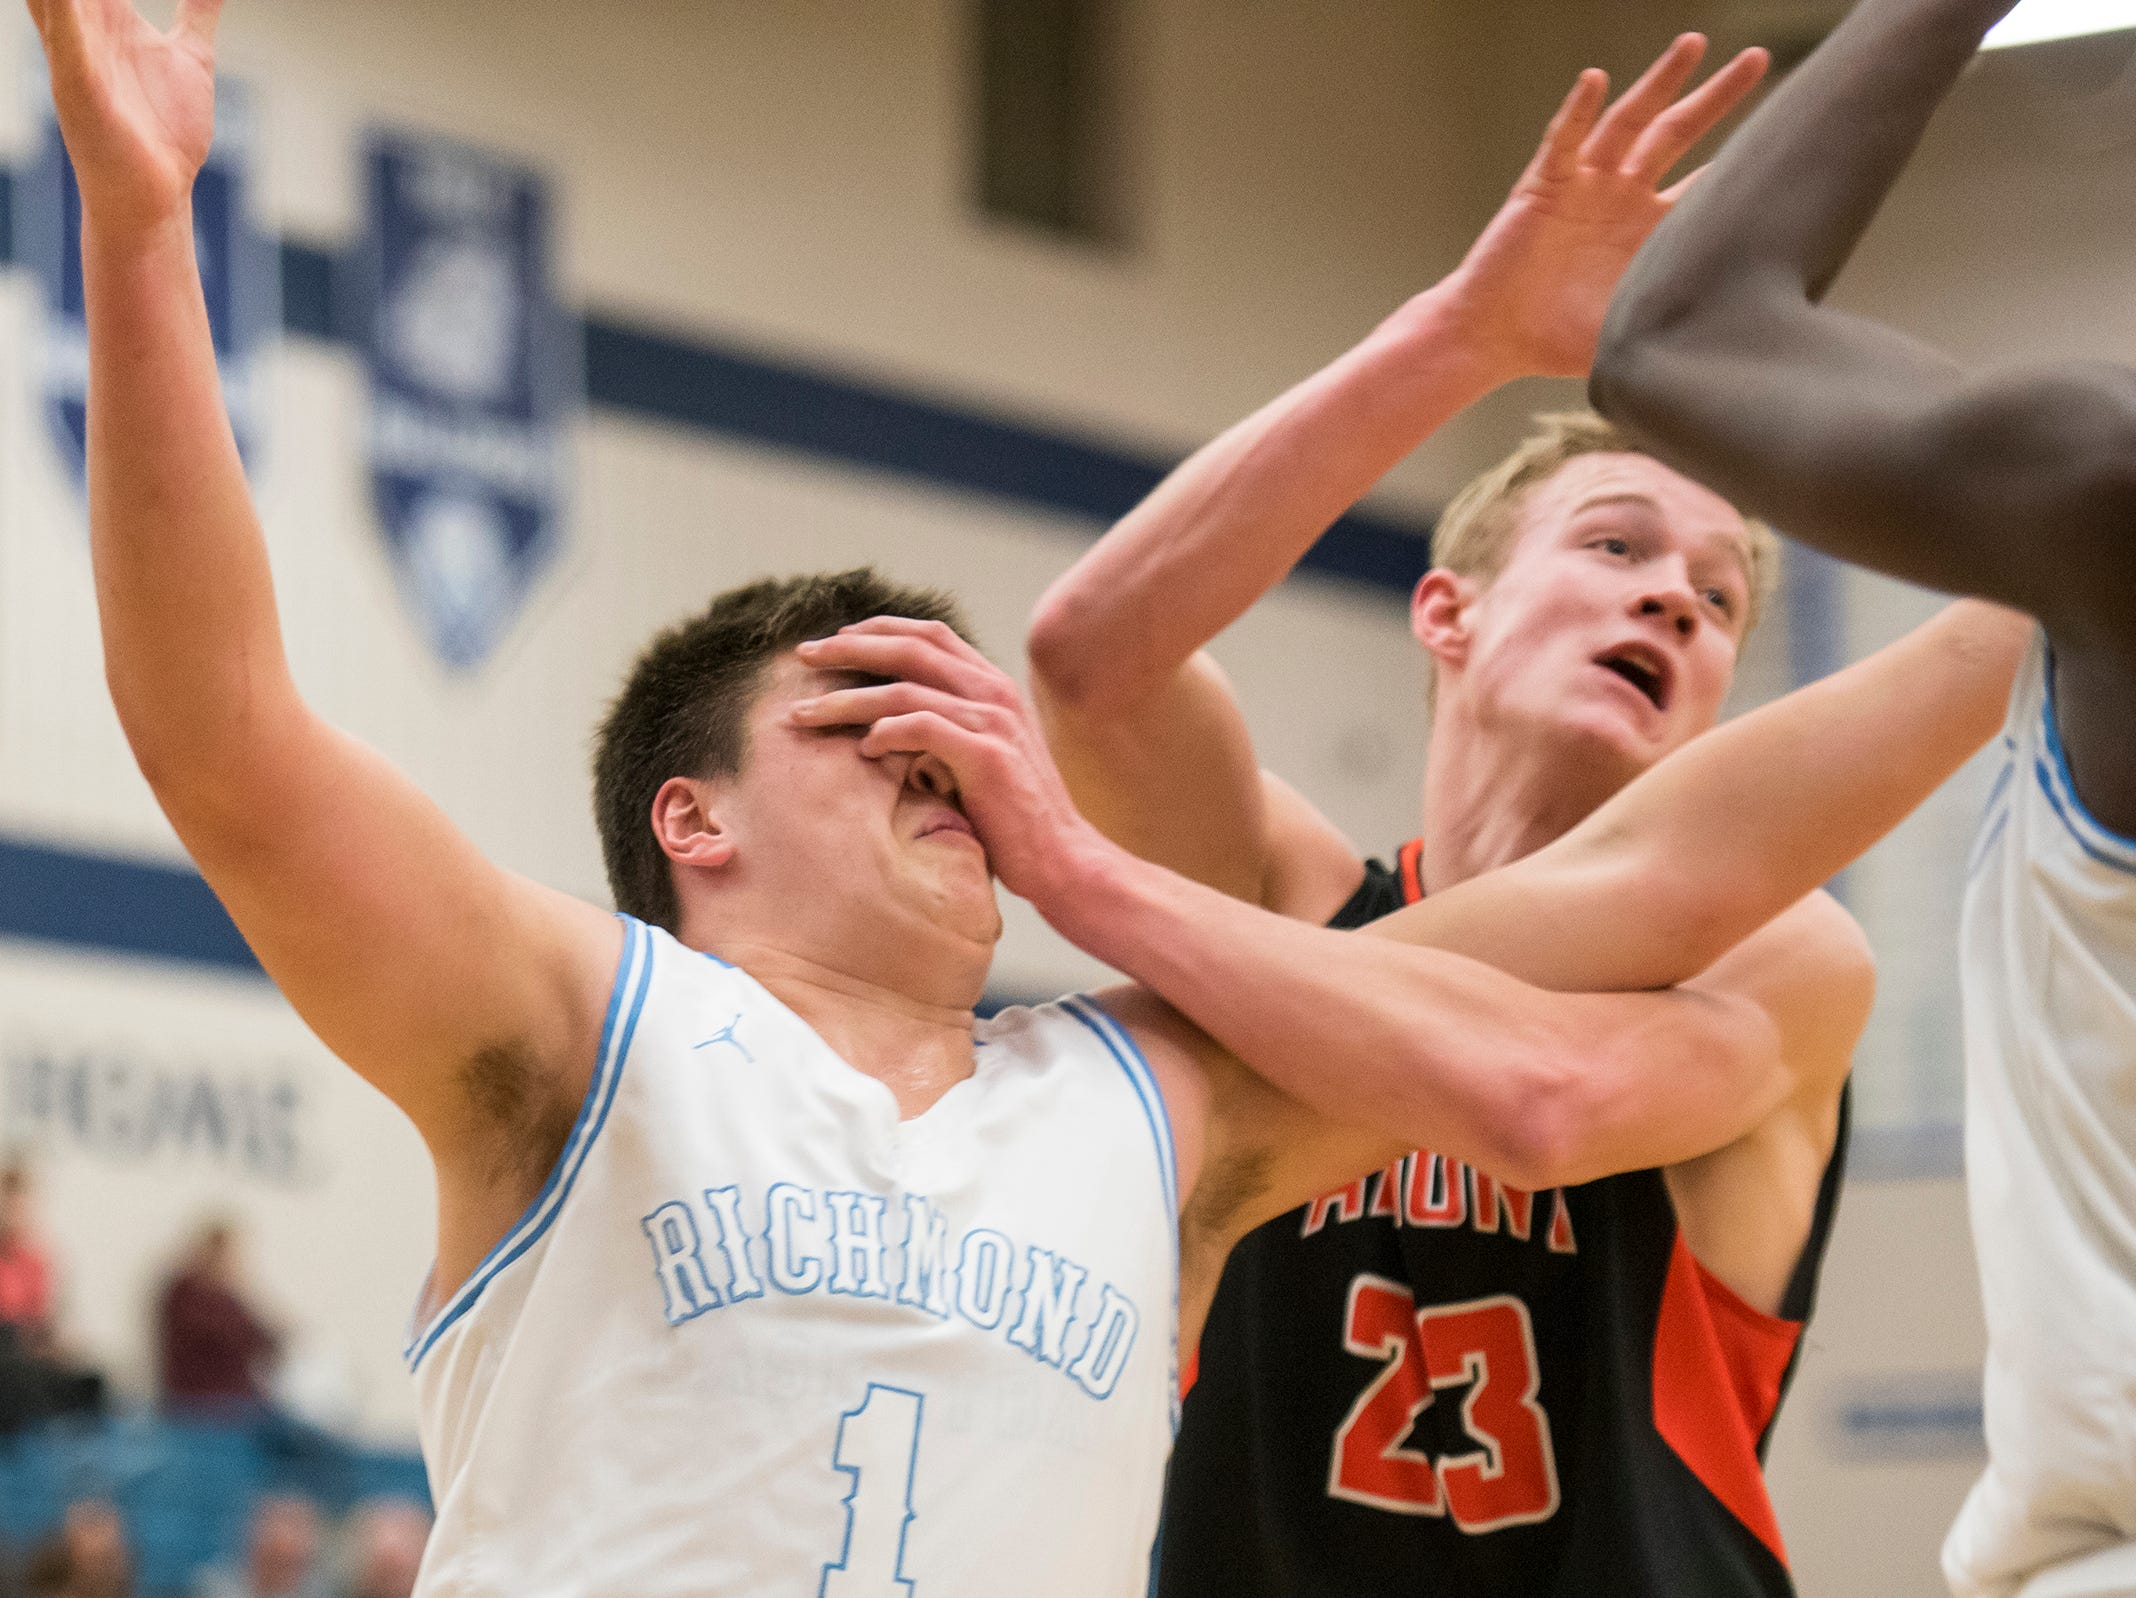 Almont High School forward Colby Schapman (23) pushes against Richmond's Connor Cracchiolo while they fight for a rebound during their basketball game Friday, Feb. 15, 2019 at Richmond High School.